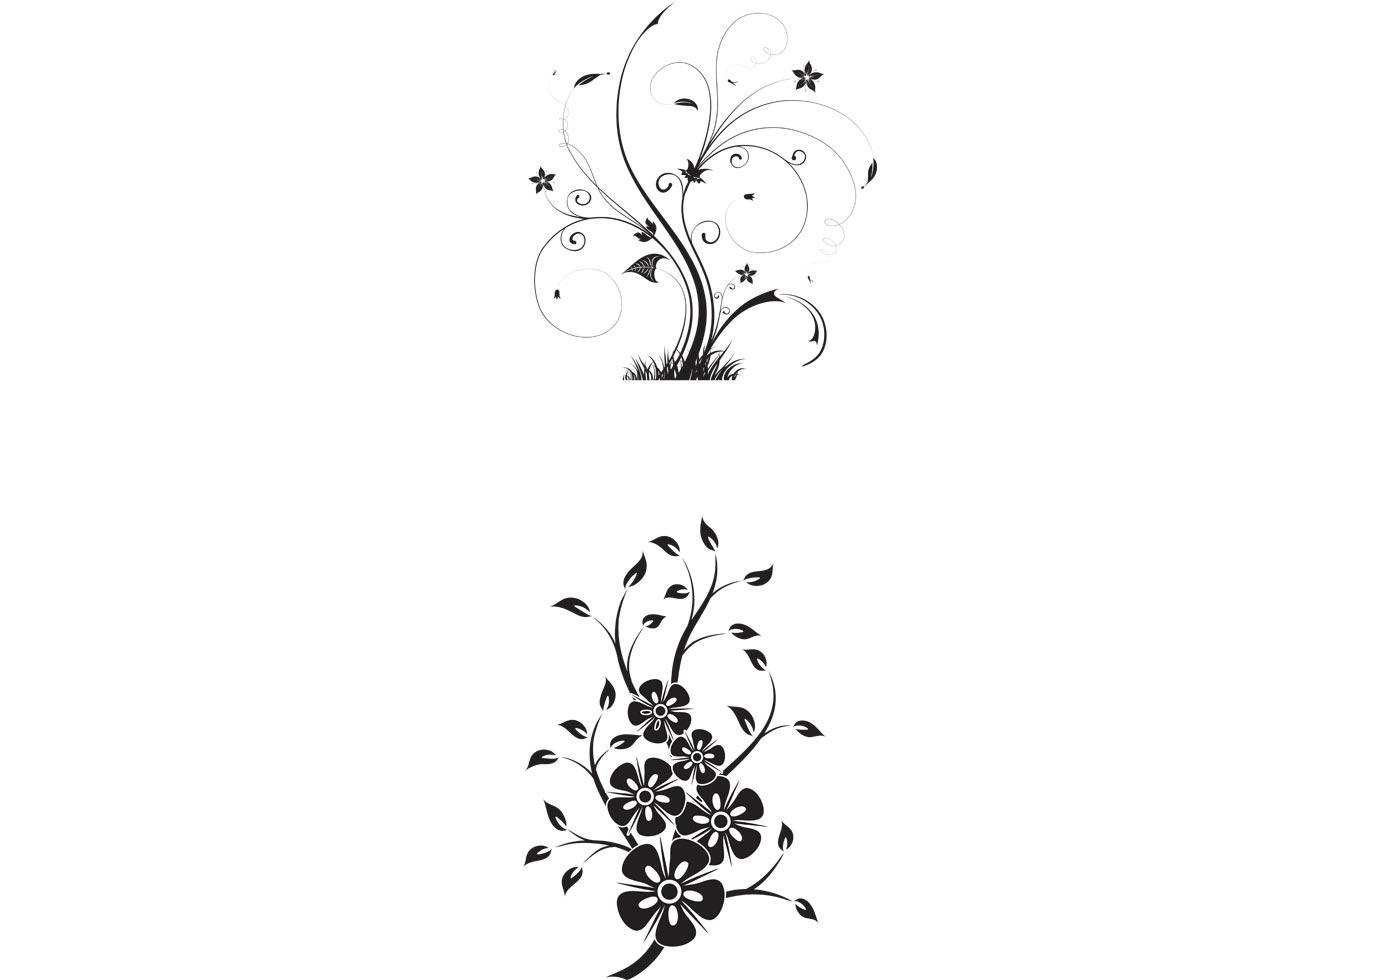 1400x980 Top Floral Swirls Vector Library Free Vector Art, Images